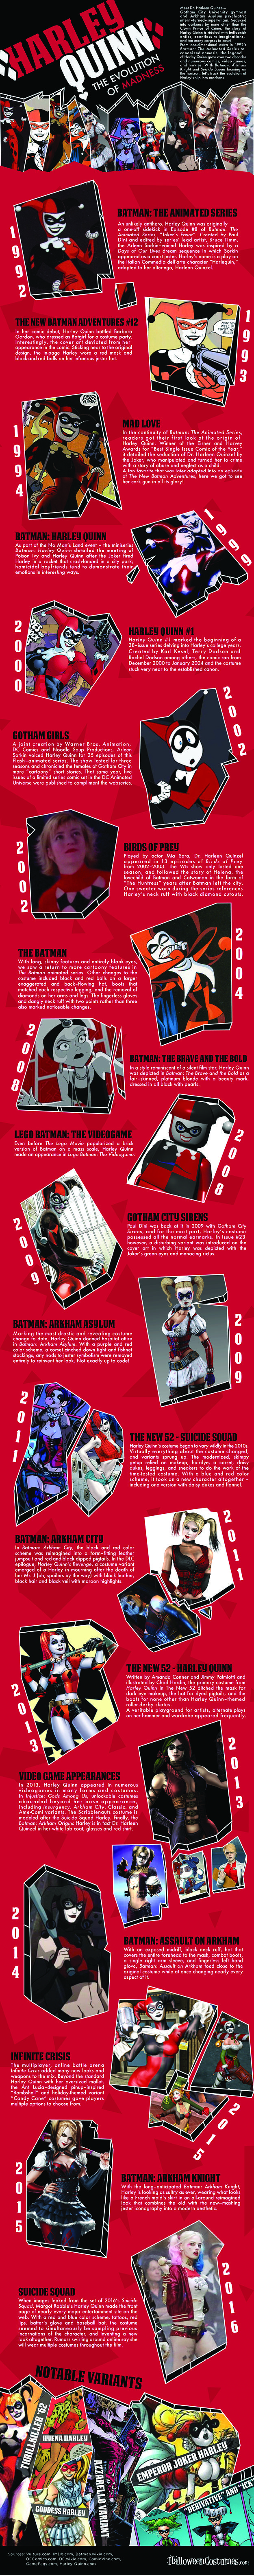 Track The Evolution of Harley Quinn in New Infographic InfographicHarley Quinn5 Days Ago